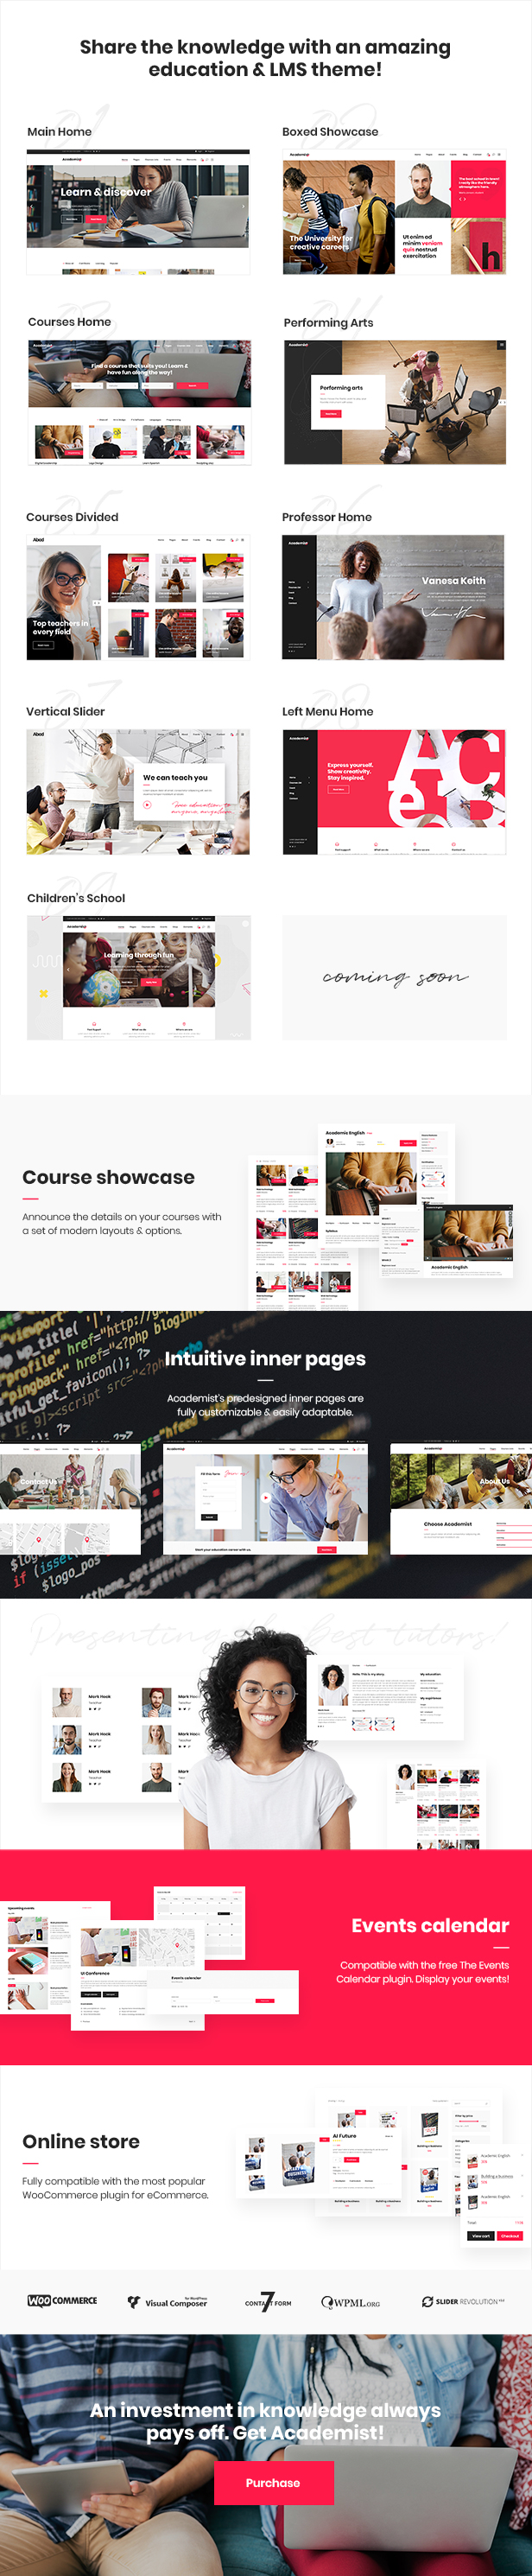 WordPress theme Academist - A Modern Learning Management System and Education Theme (Education)